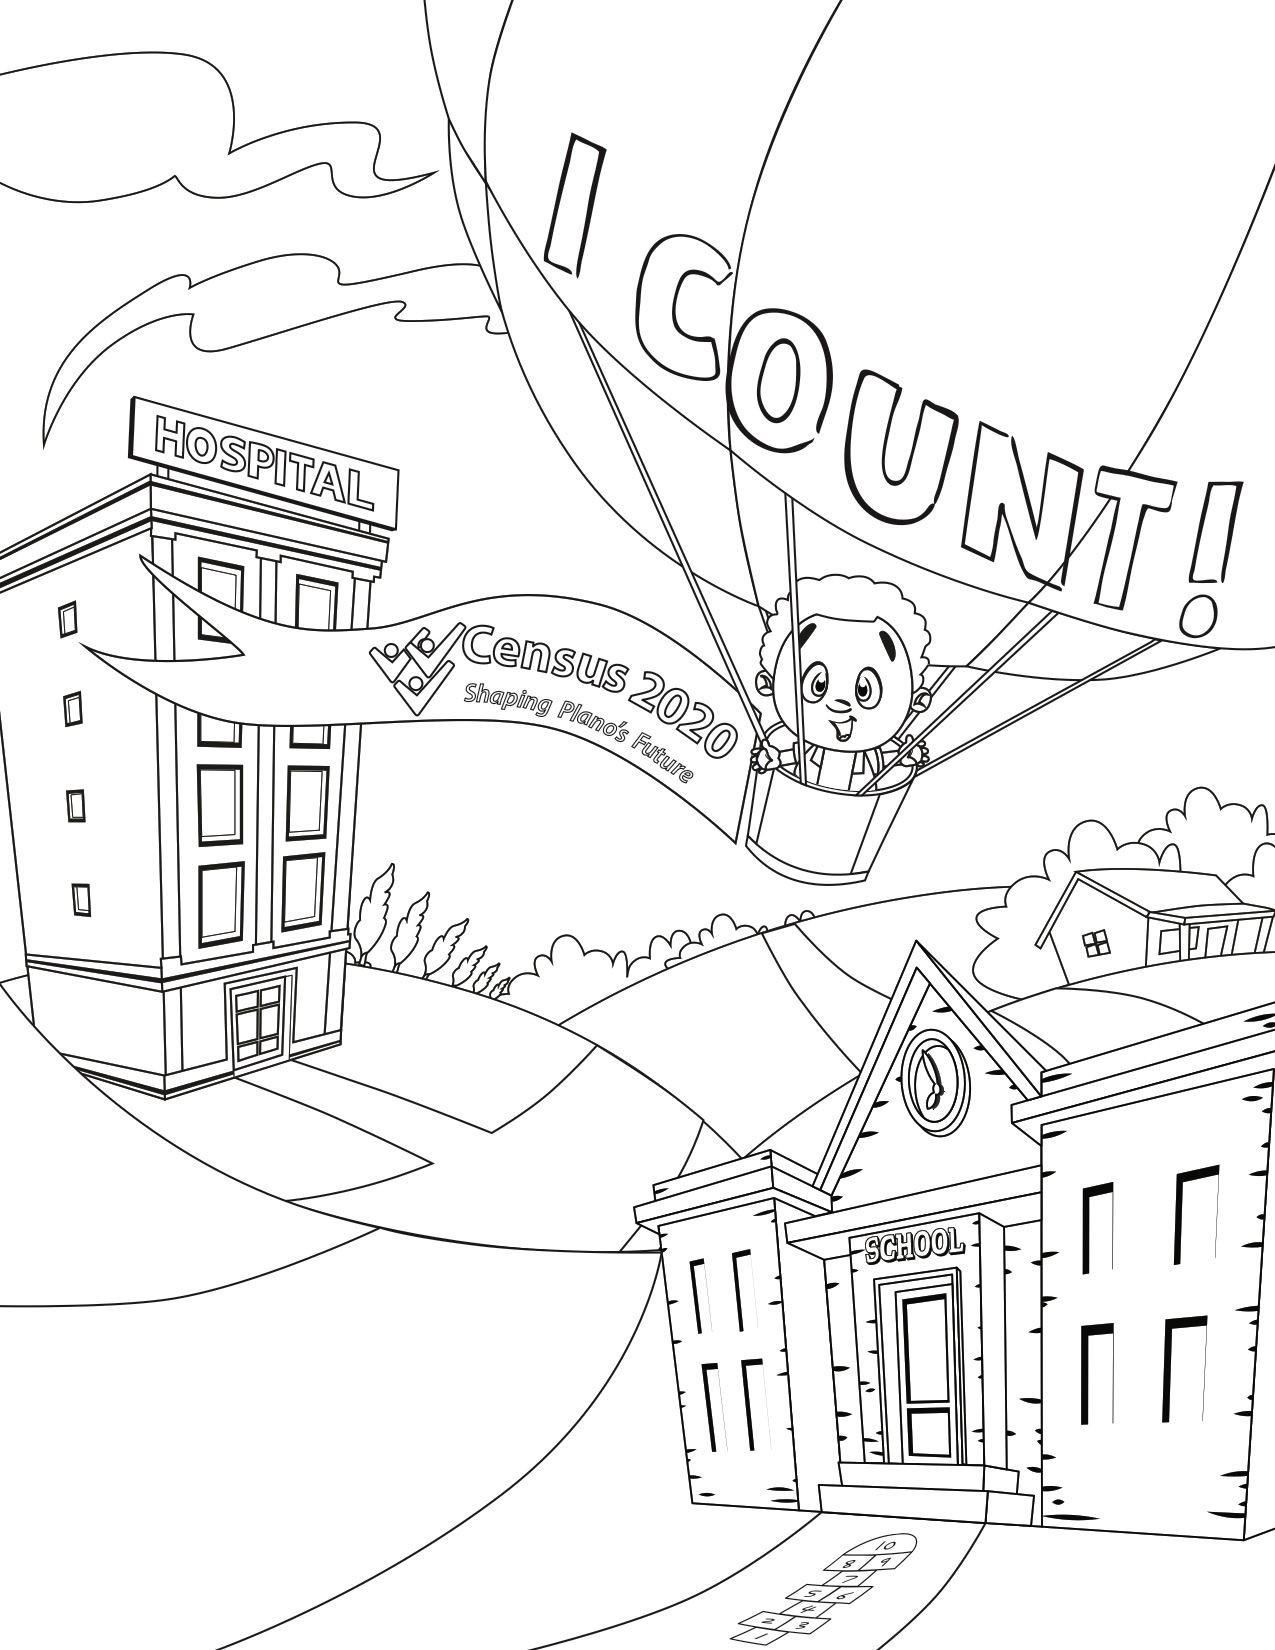 Census 2020 coloring page